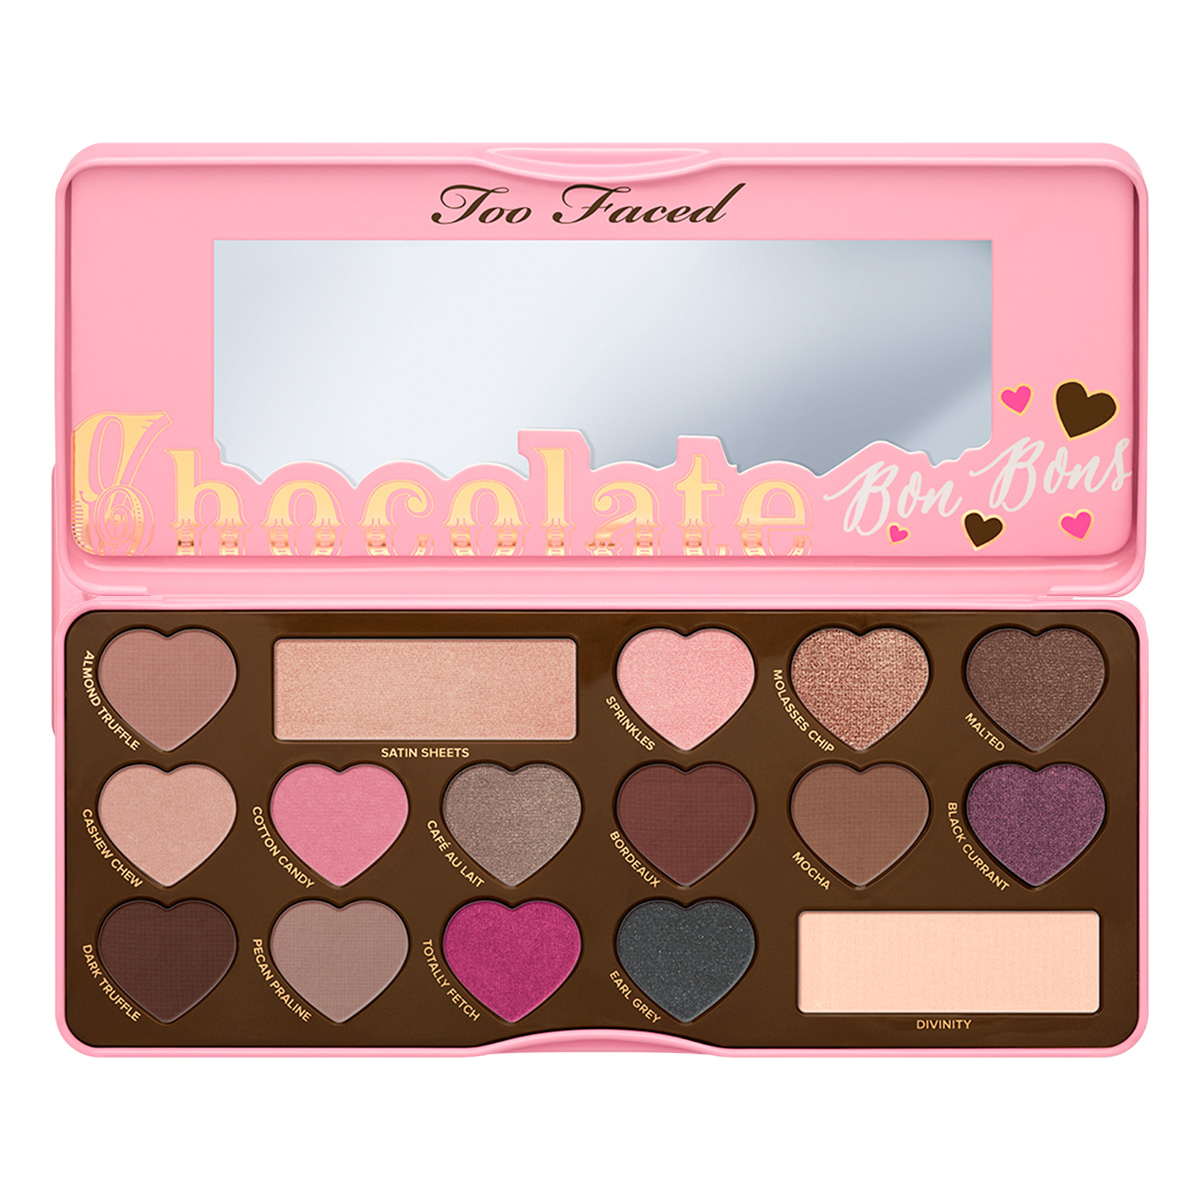 Too Faced Chocolate Bon Bons Paleta De Sombras Paragon Cosmetics